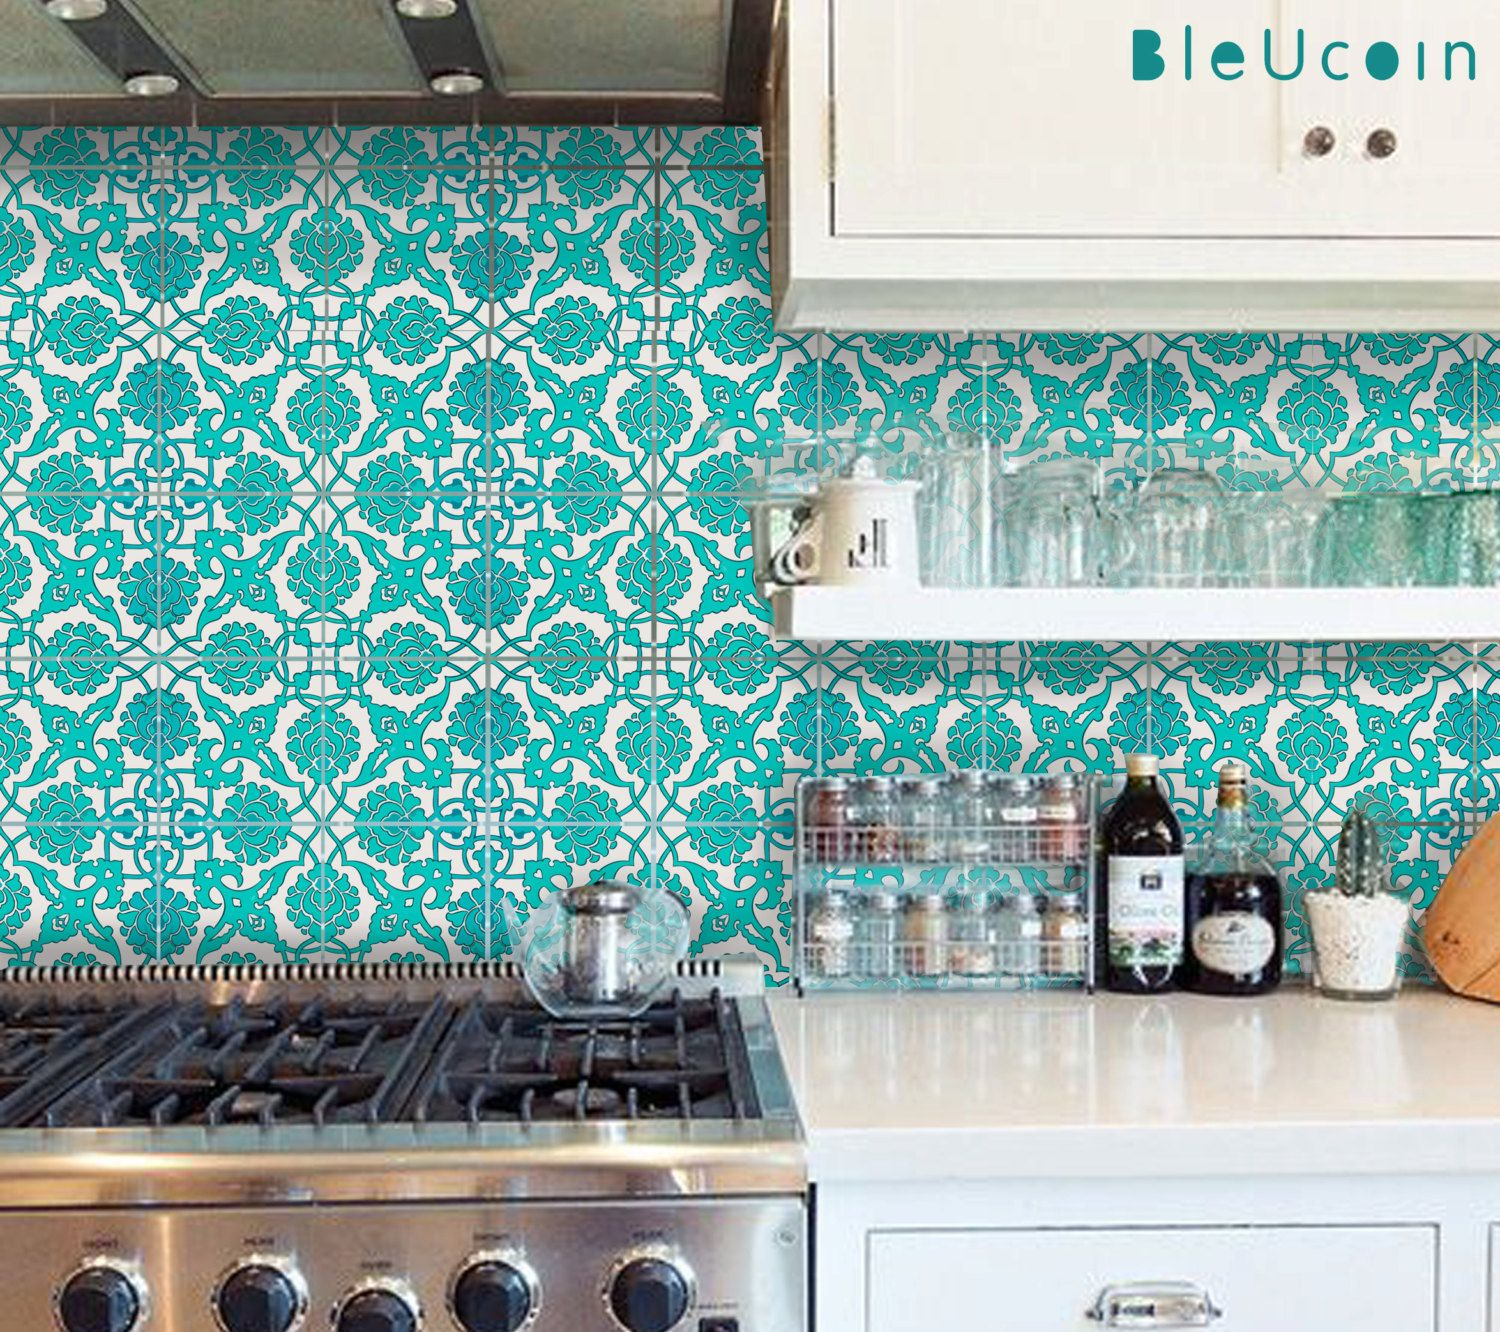 Tile wall floor vinyl decal indian teal hand painted kitchen tile wall floor vinyl decal indian teal hand painted kitchen bathroom removable stair riser sticker pack of 44 dailygadgetfo Images